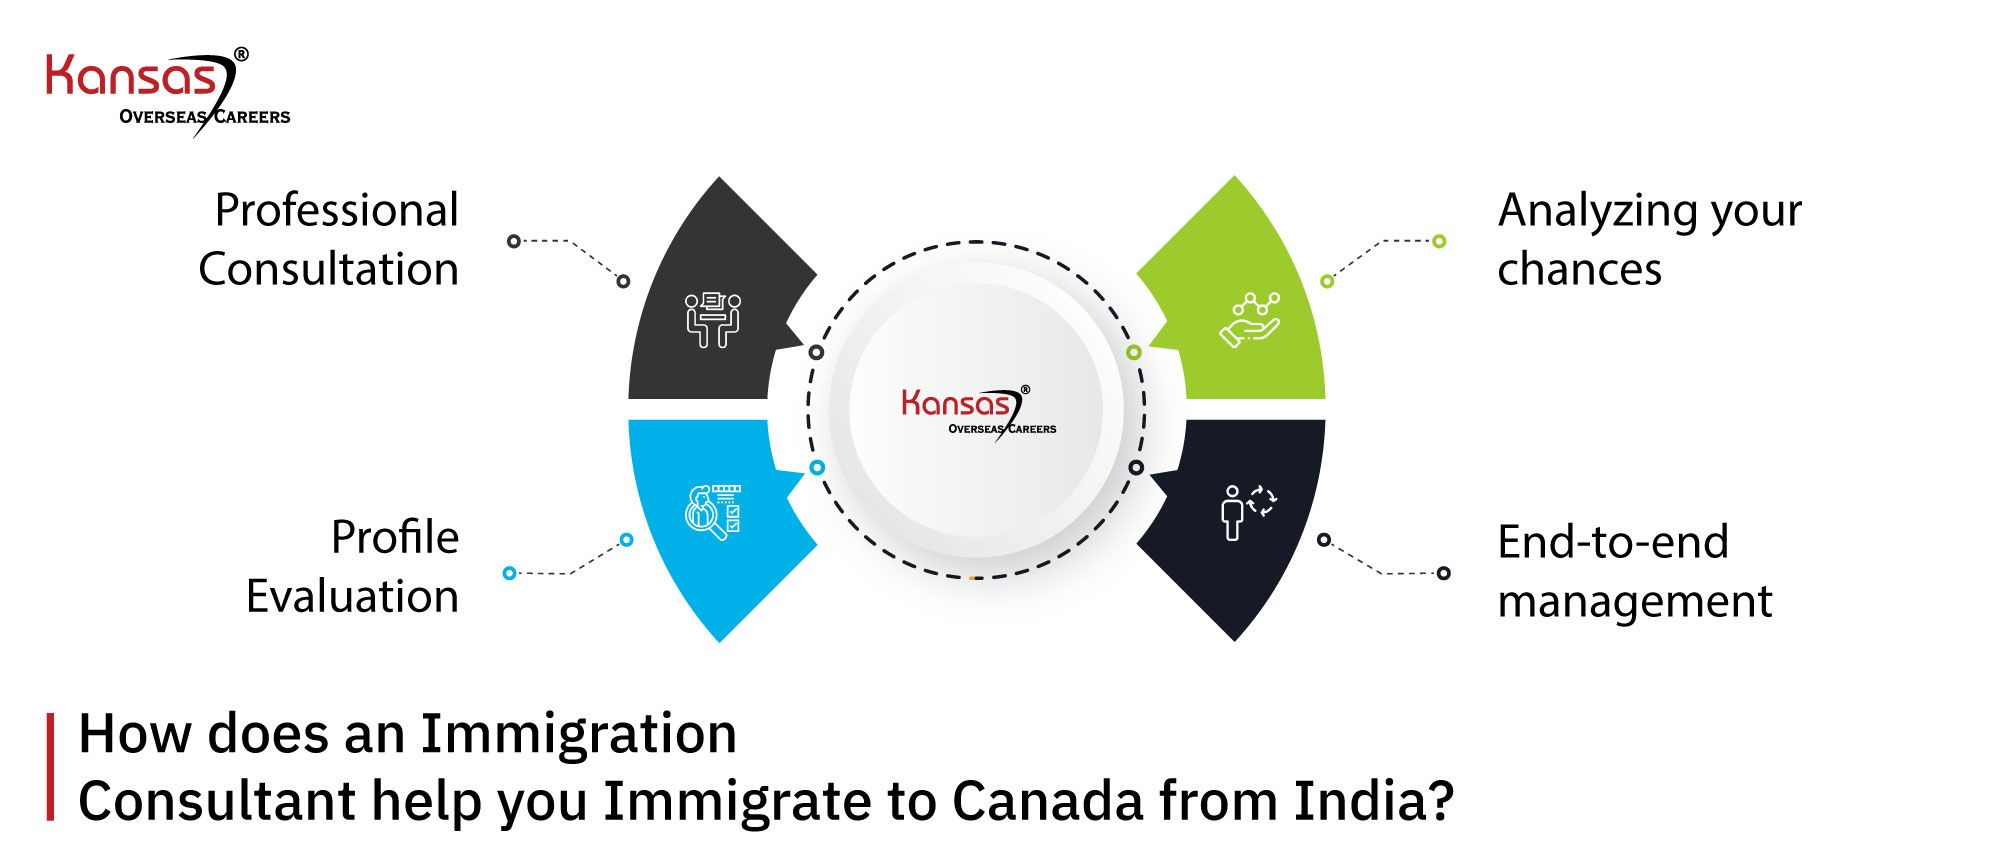 How-does-an-Immigration-Consultant-help-you-Immigrate-to-Canada-from-India-